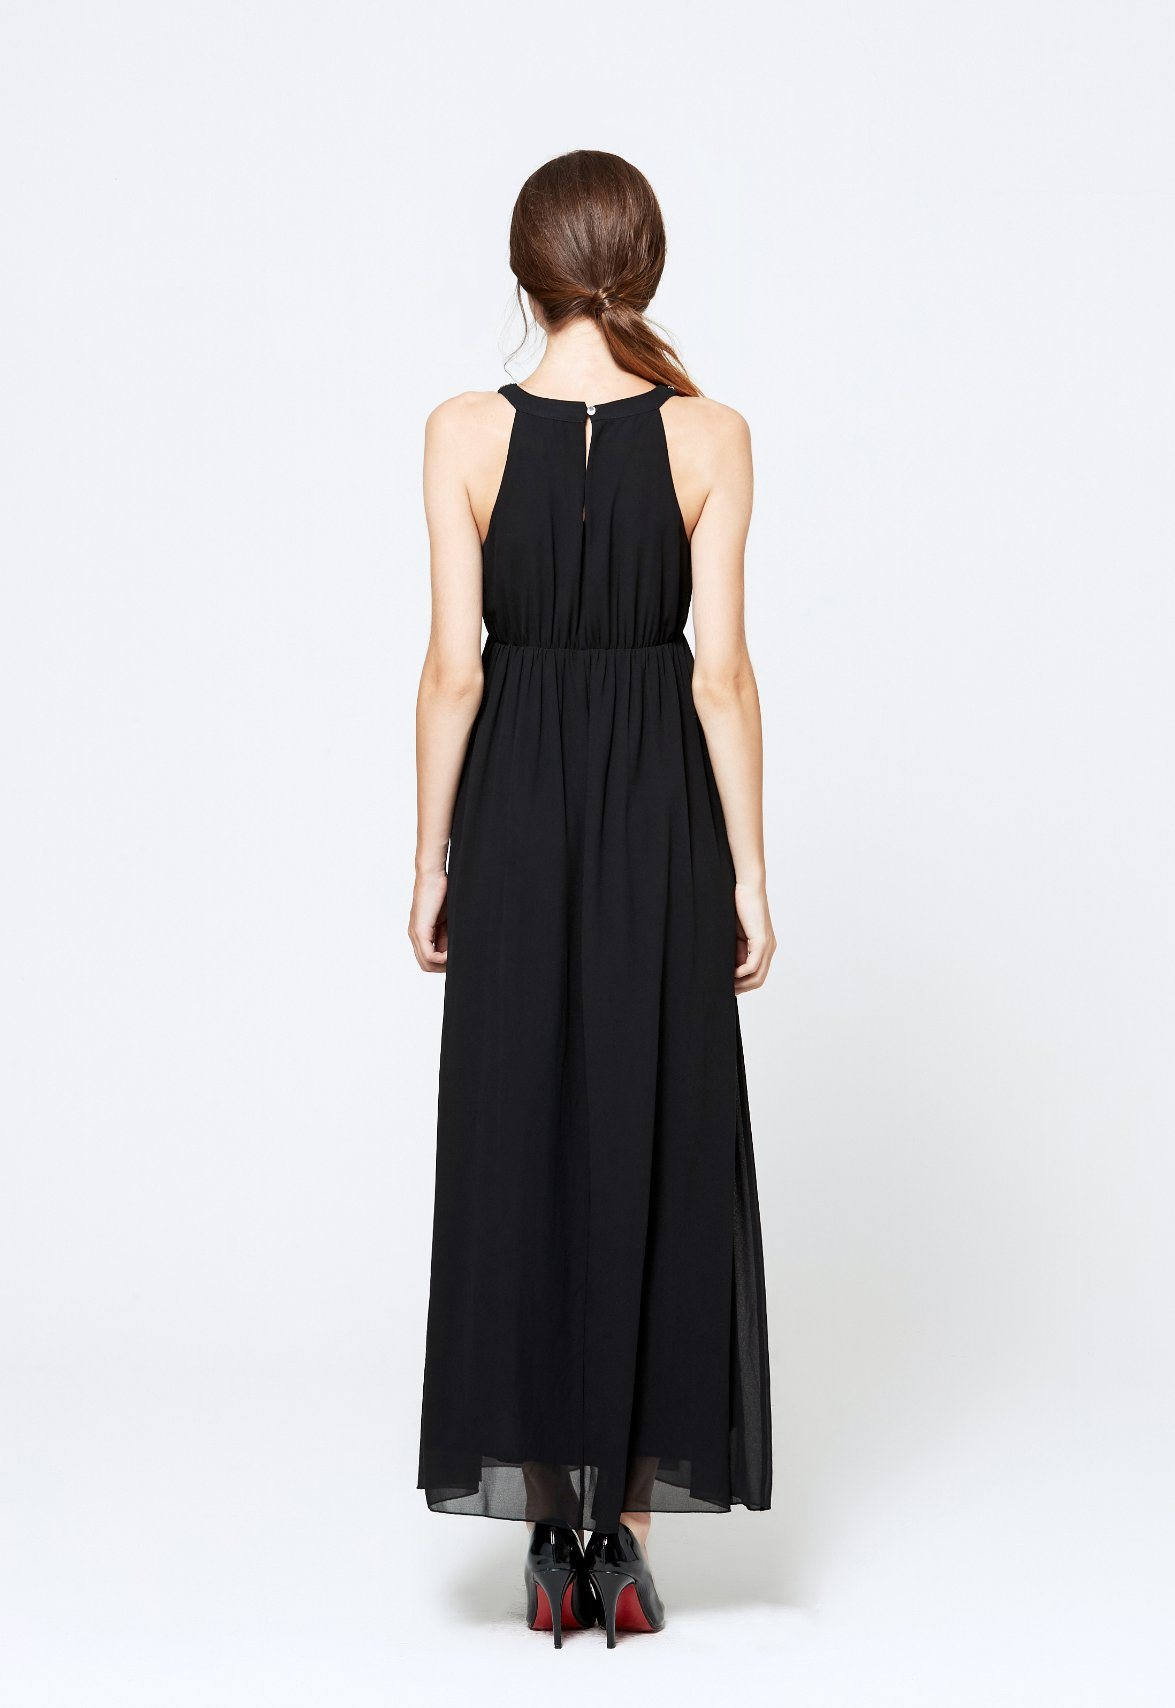 OEM ODM Best Selling Casual Sleeveless Chiffon Black Sexy Dress